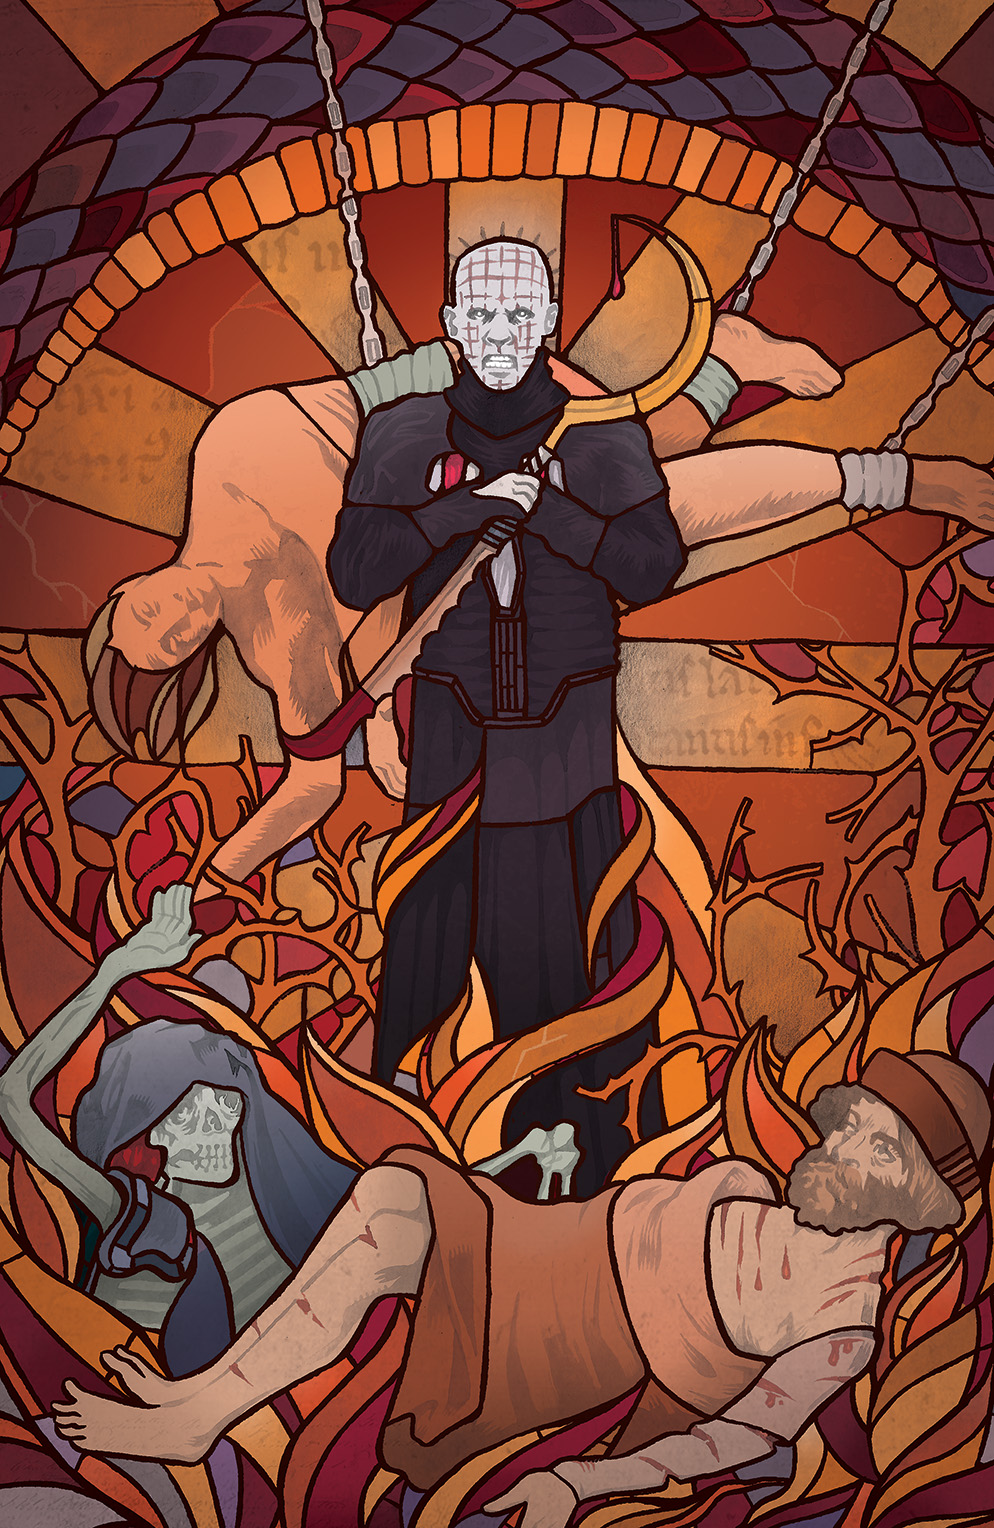 Clive Barker's Hellraiser: Bestiary #6 Cover A by Conor Nolan